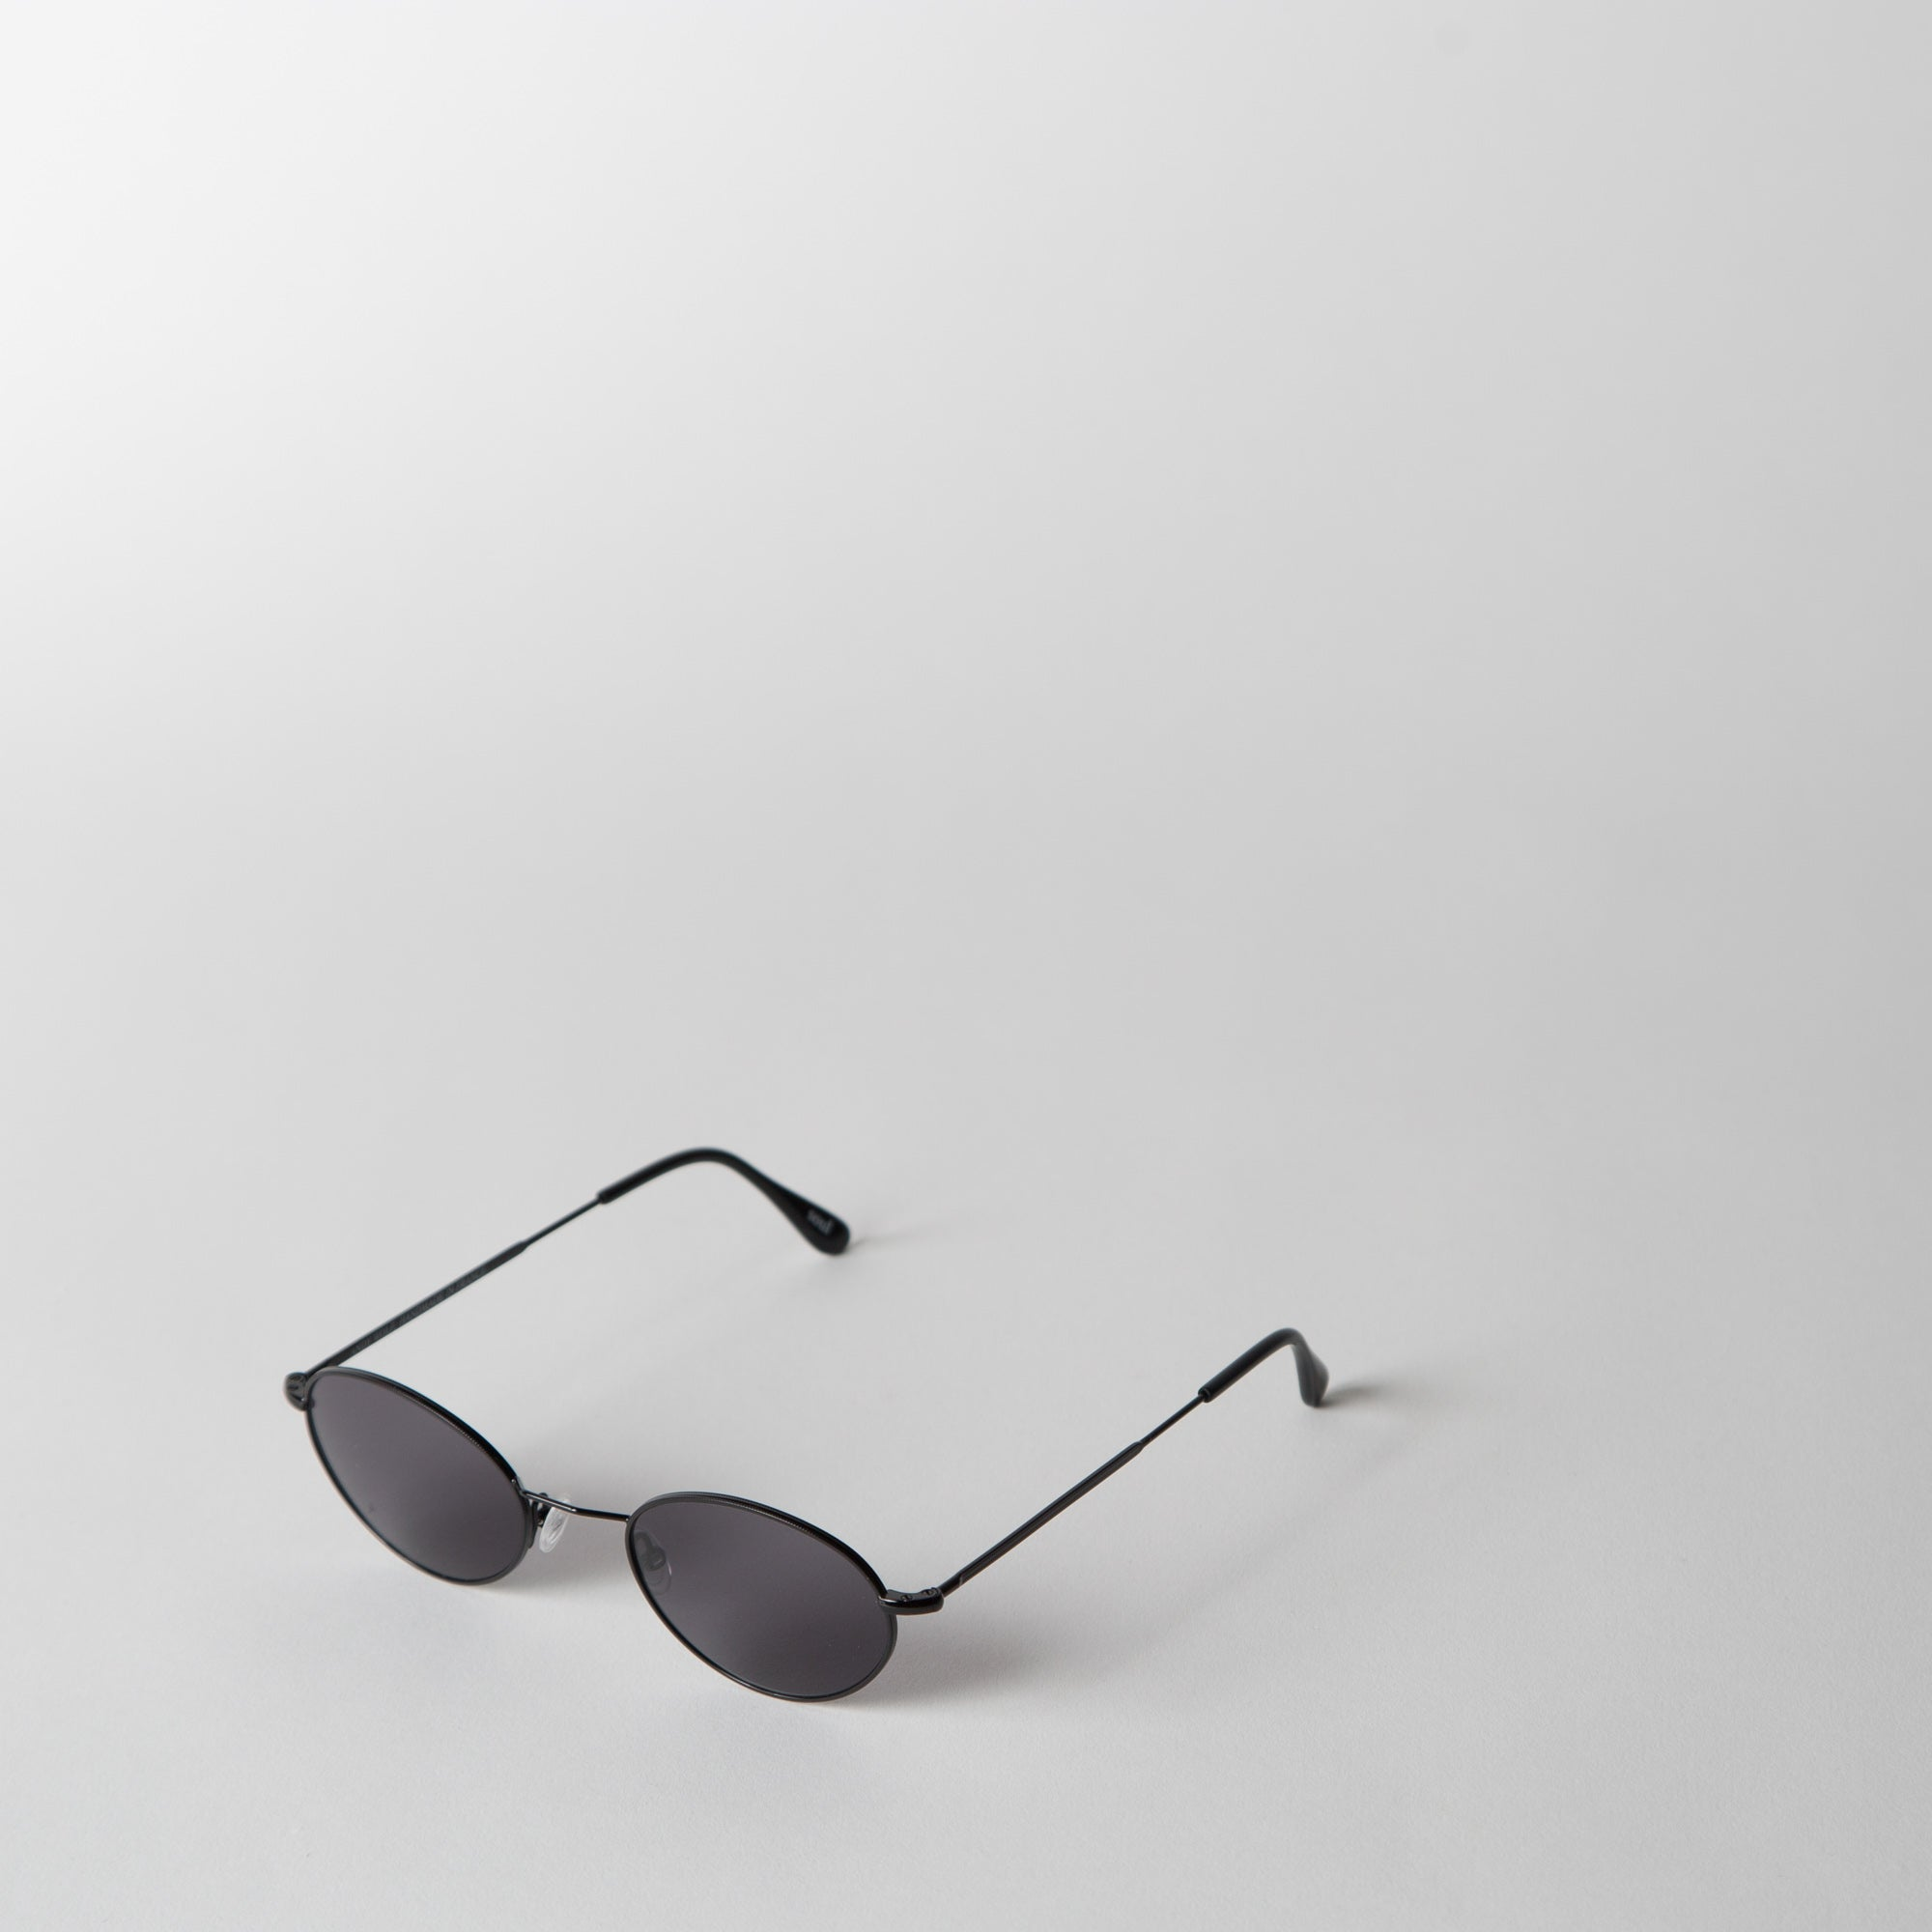 Slim Oval Sunglasses, jet-black